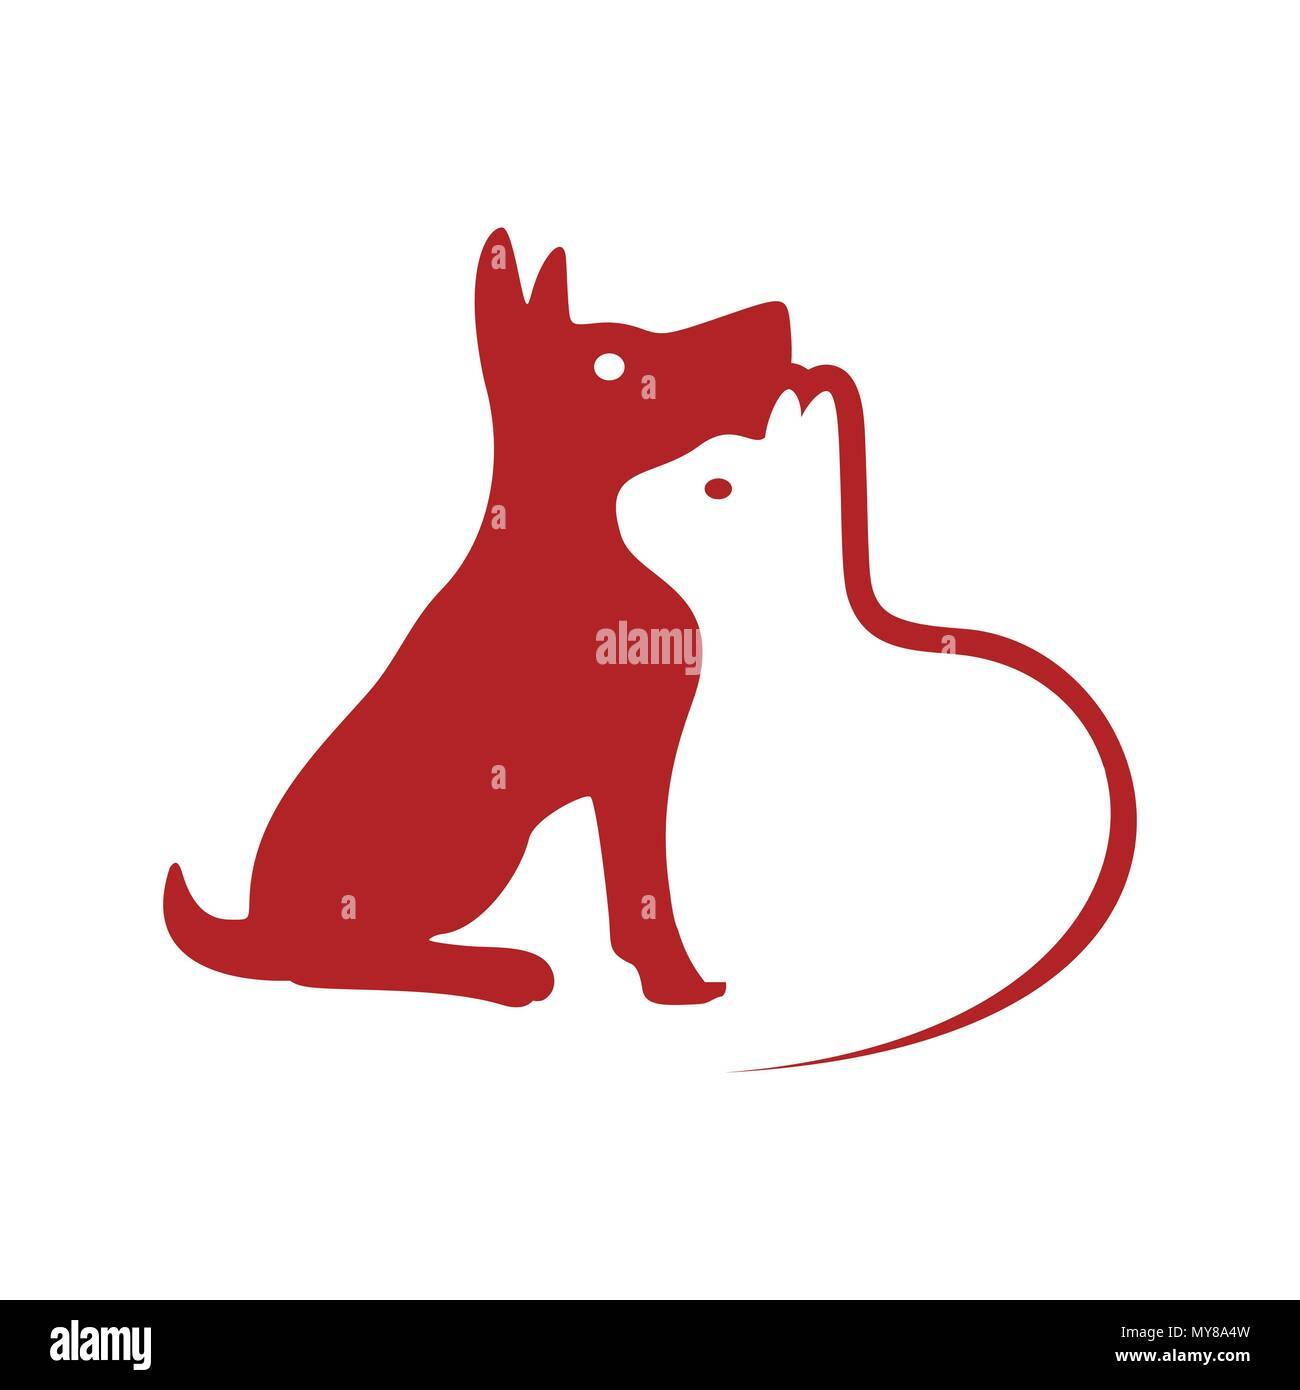 Dog and Cat Negative Space Vector Symbol Graphic Logo Design - Stock Image